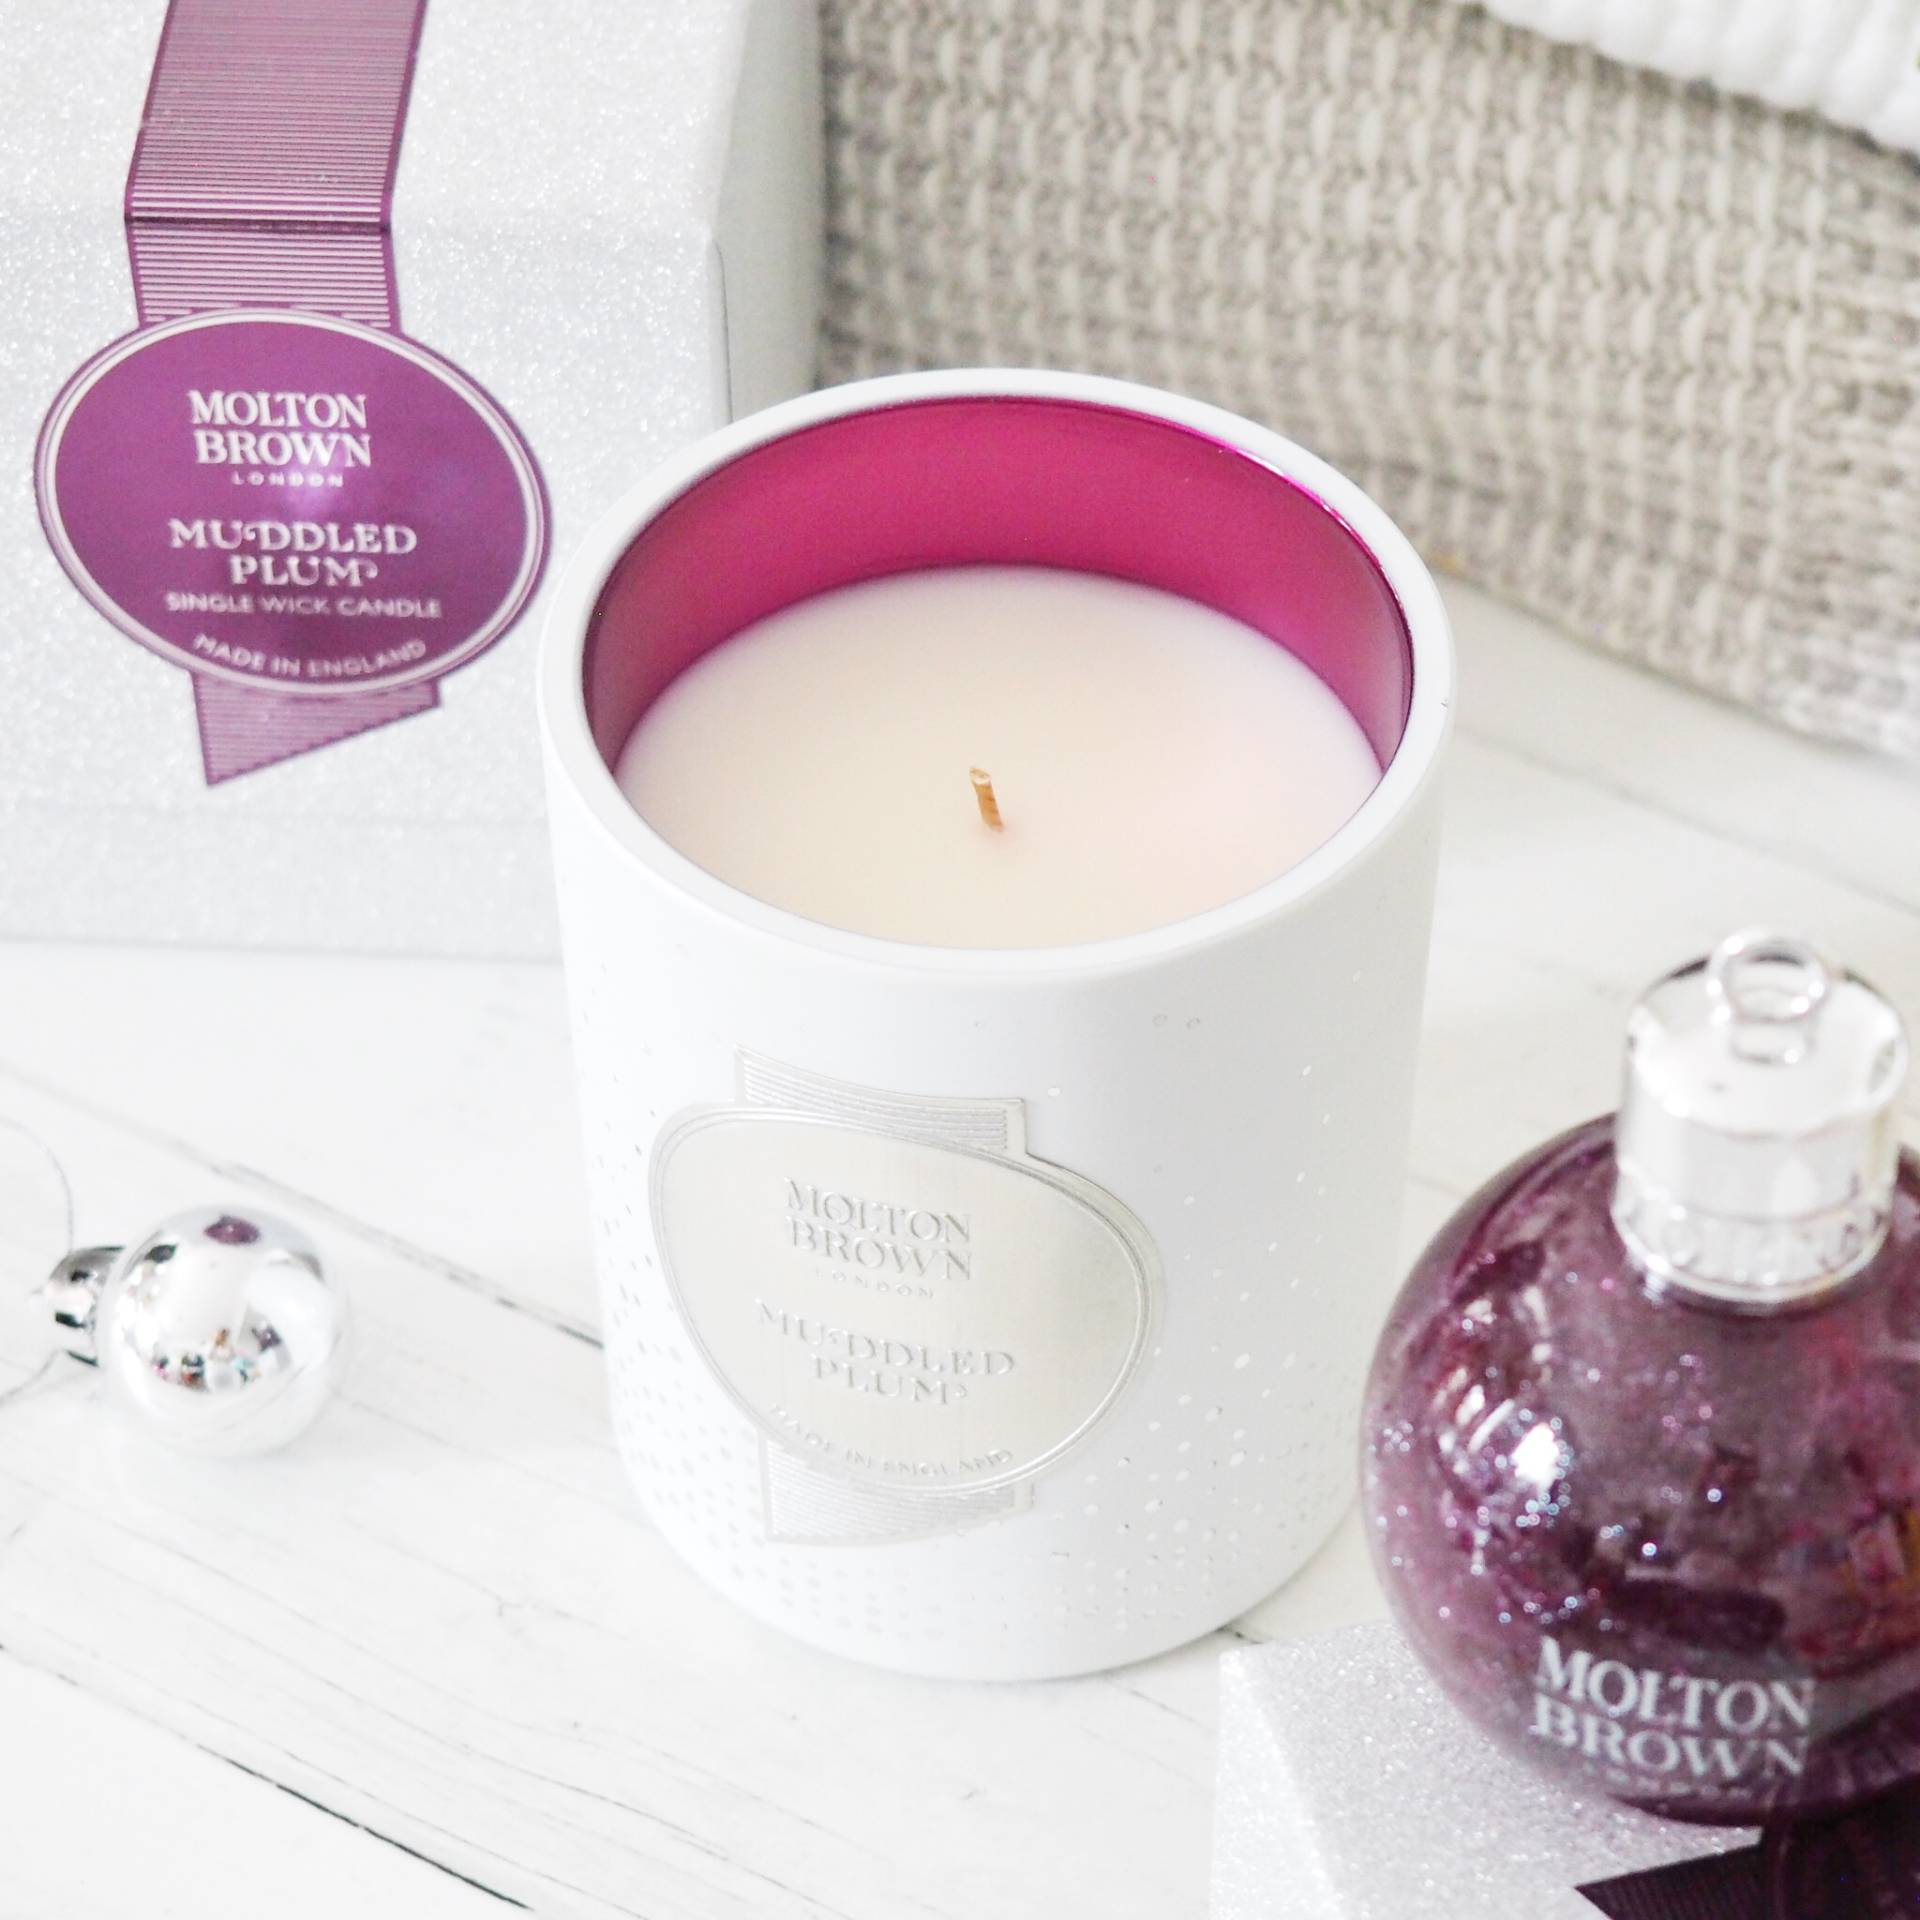 Molton_Brown_Muddled_Plum_Review